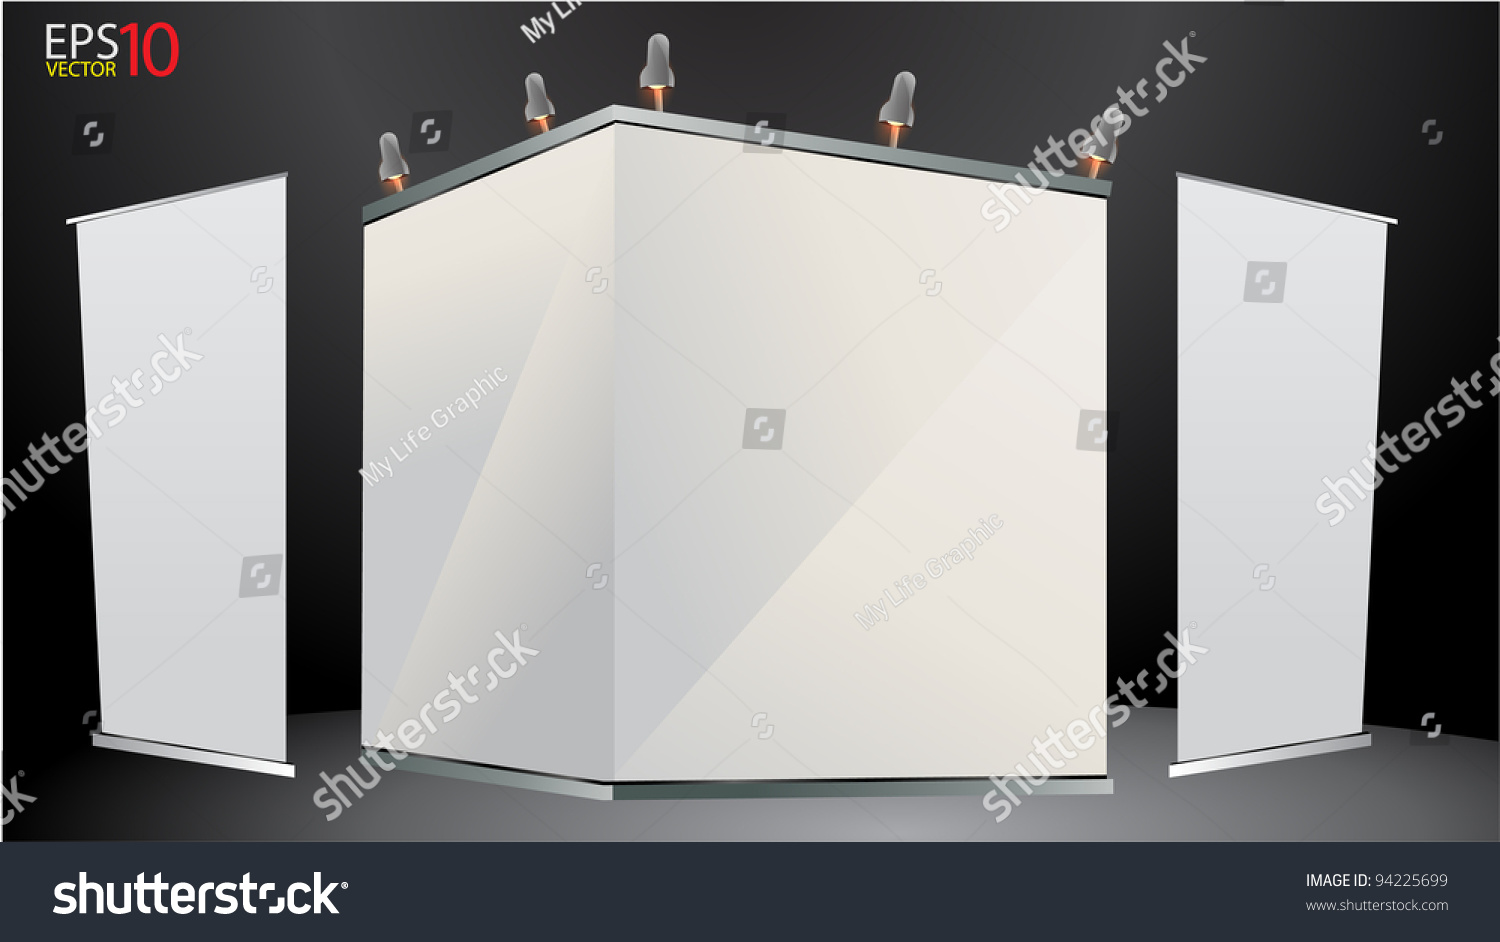 Exhibition Stand Design Vector : Blank trade exhibition stand banner stock vector